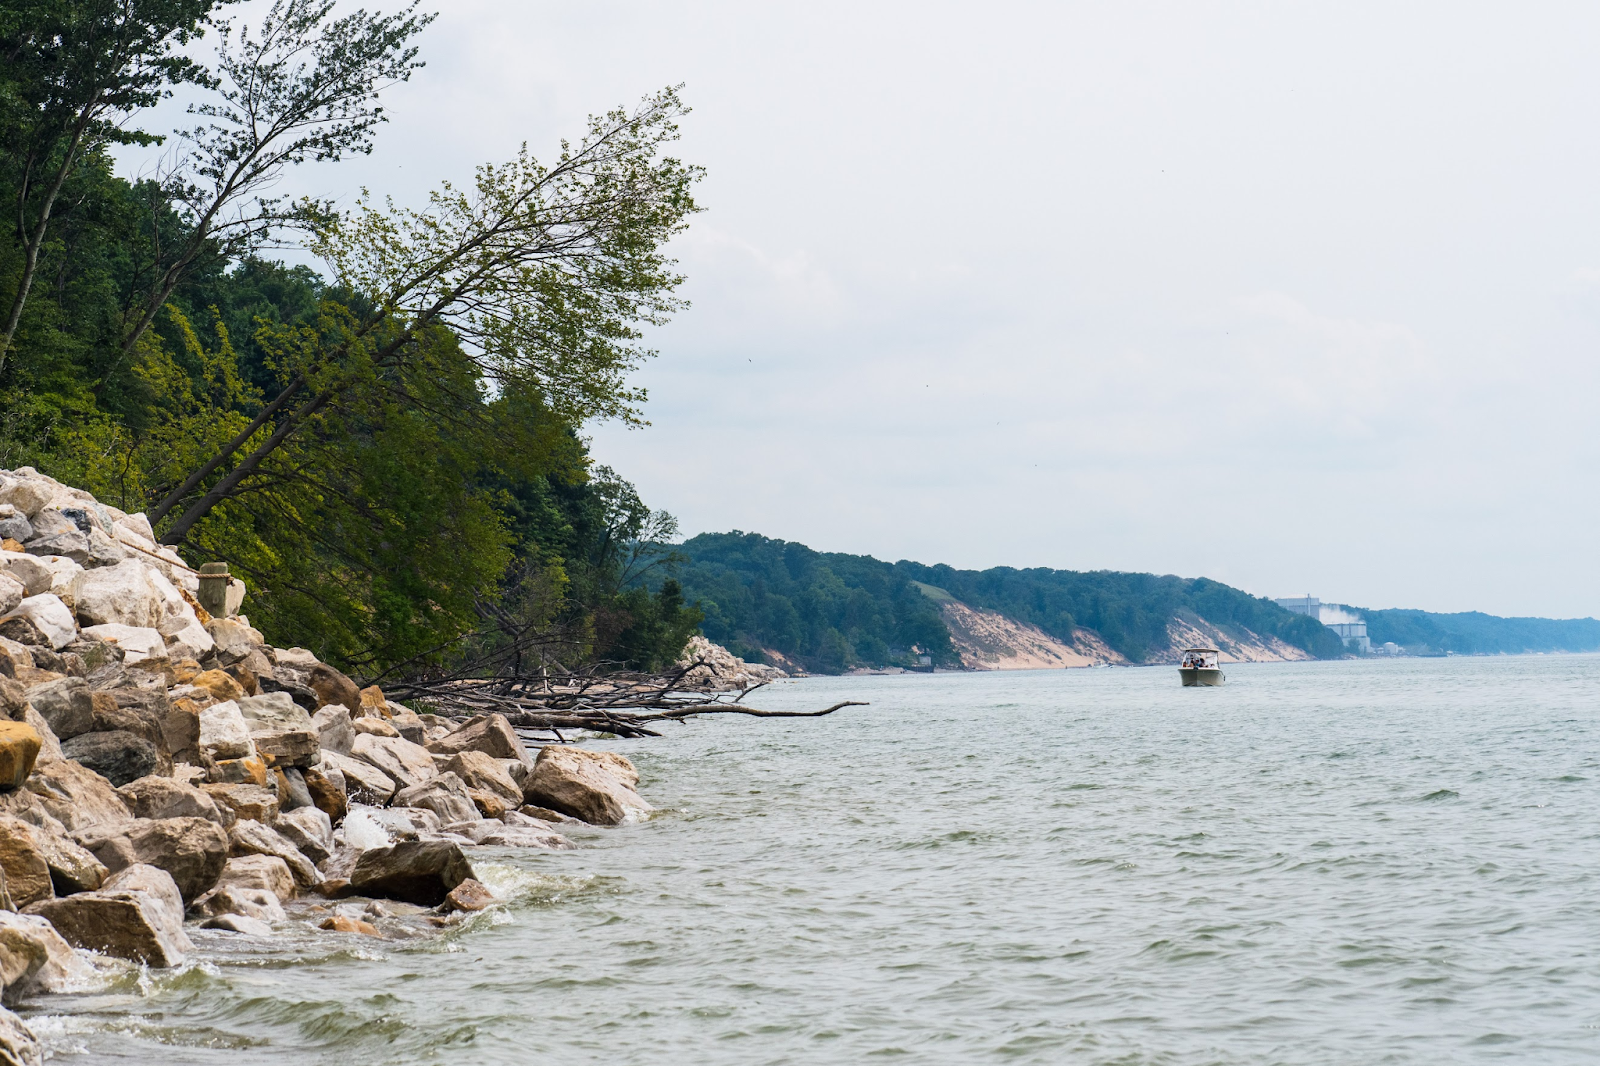 Rocky lake shoreline with forests and boat in the distance.